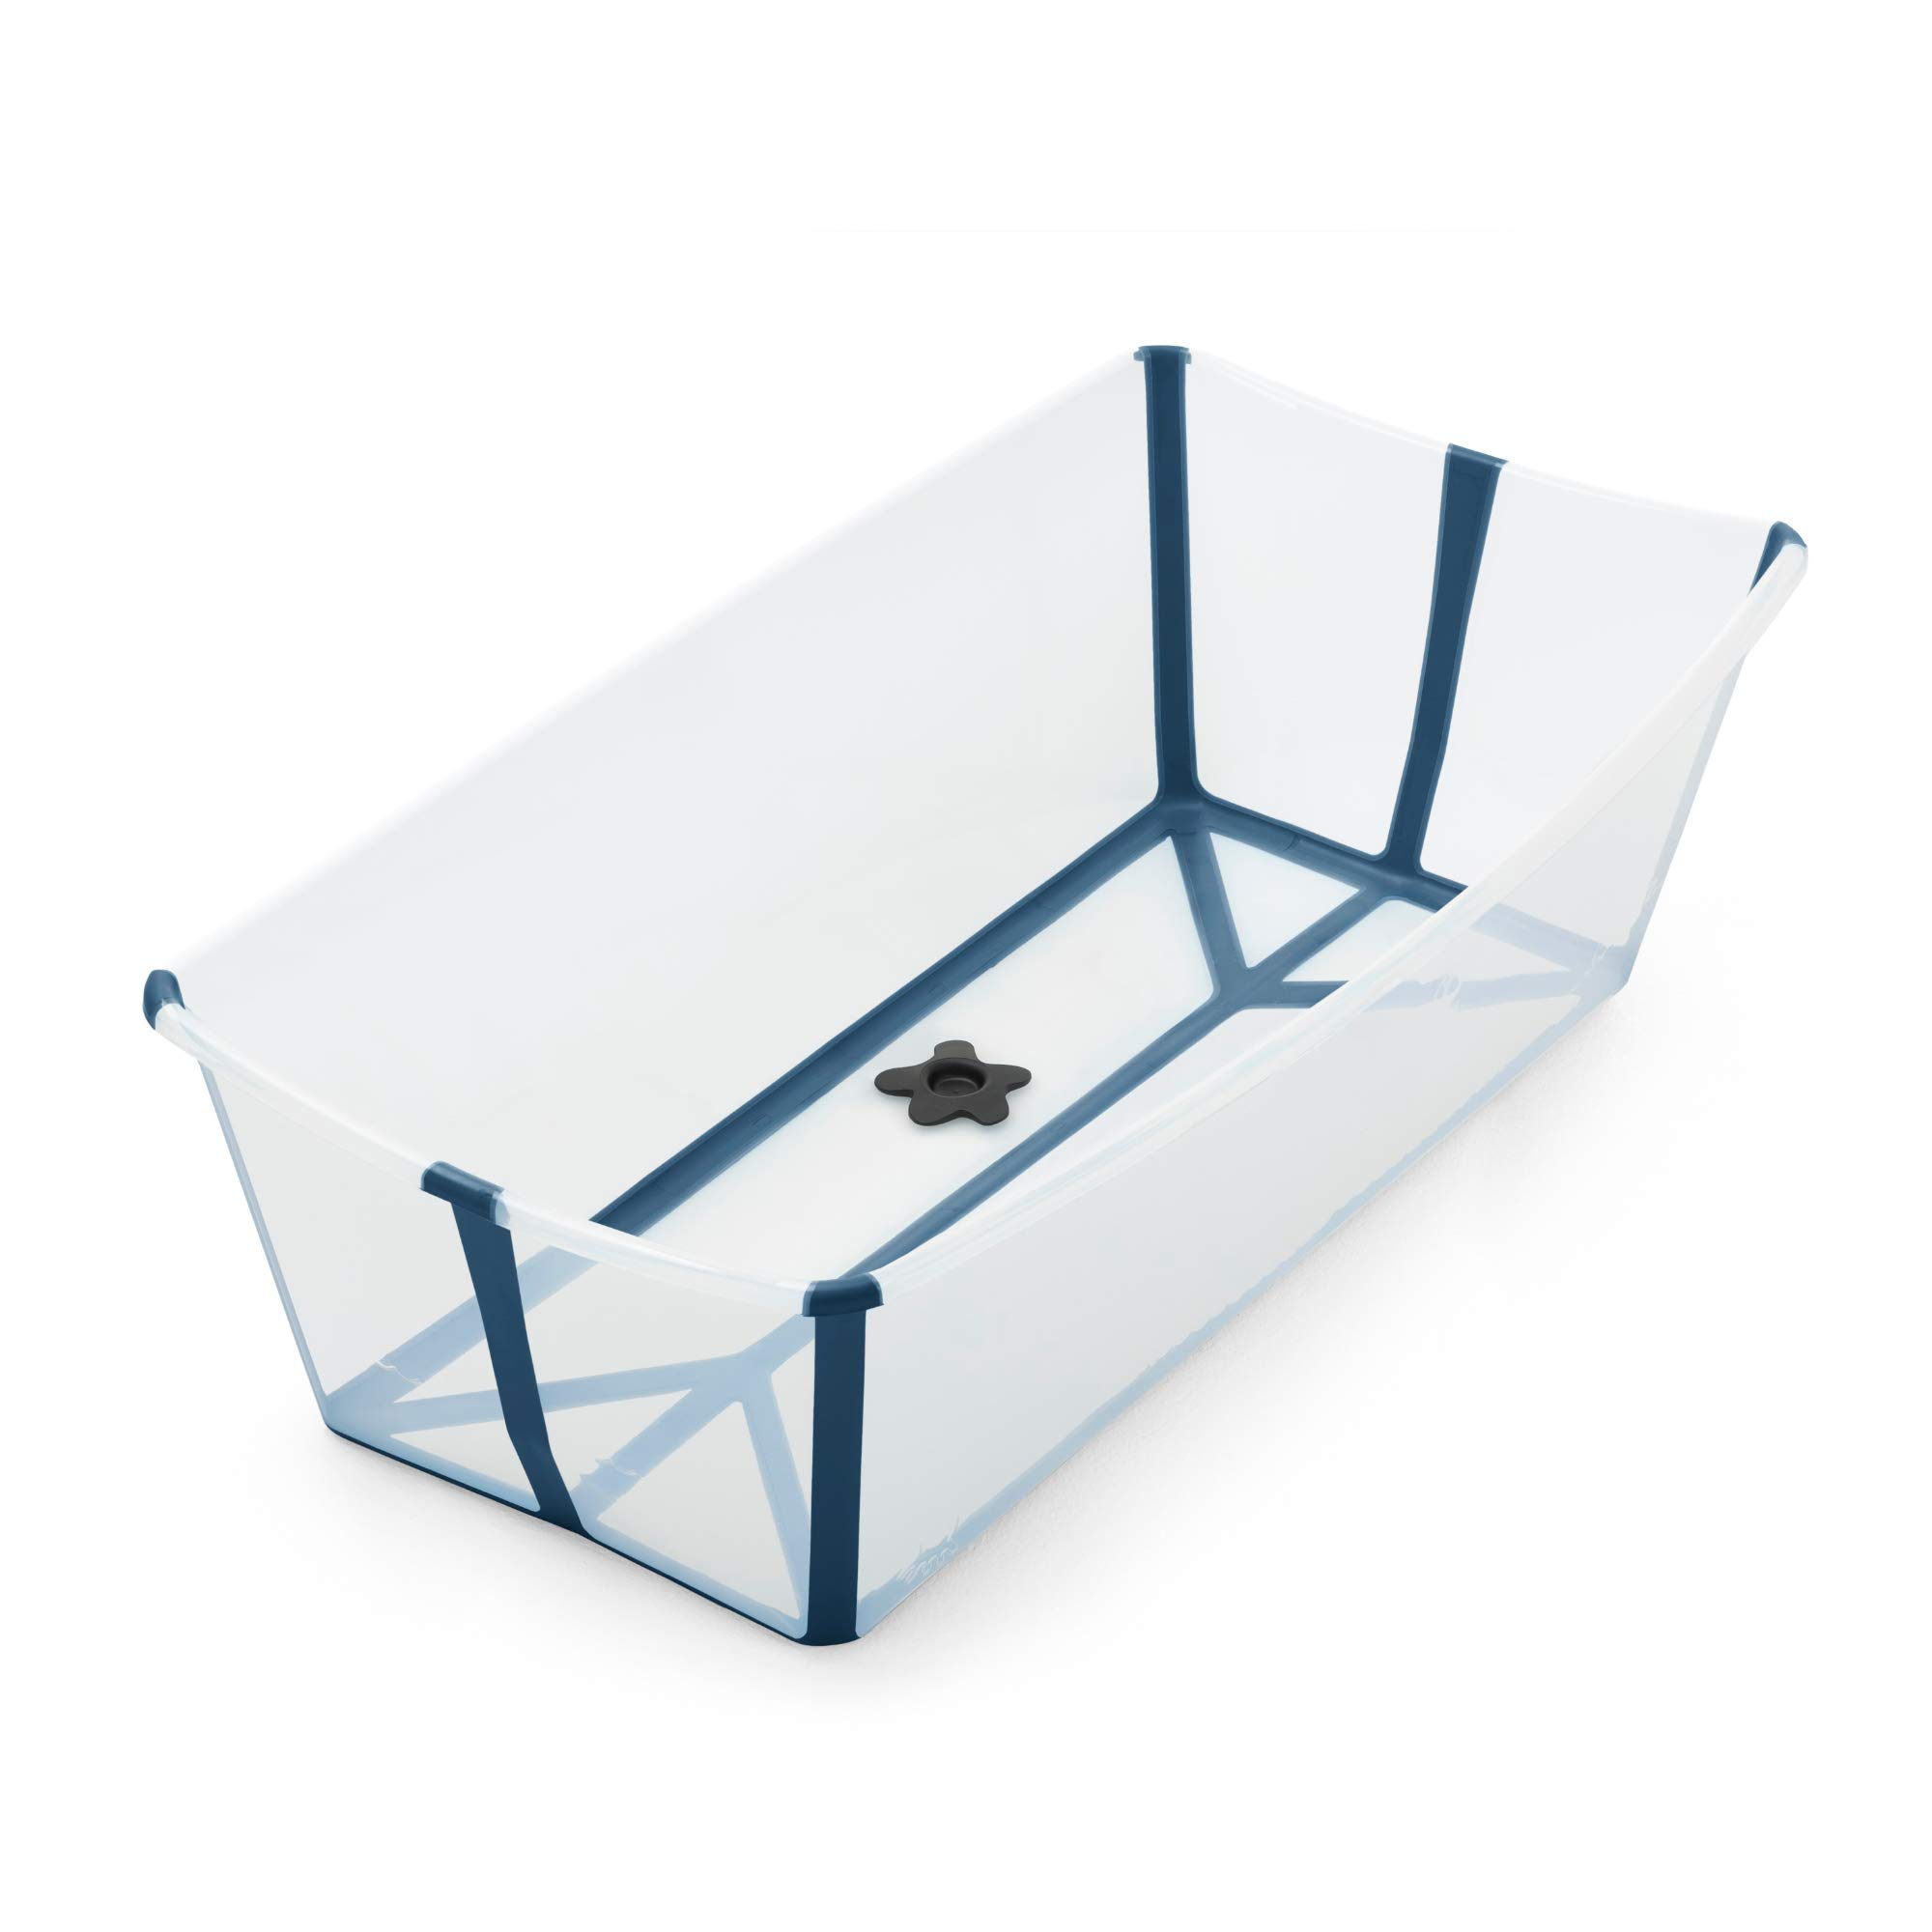 Stokke Flexi Bath X-Large, Transparent Blue - Spacious Foldable Baby Bathtub - Lightweight & Easy to Store - Convenient to Use at Home or Traveling - Best for Ages 0-6